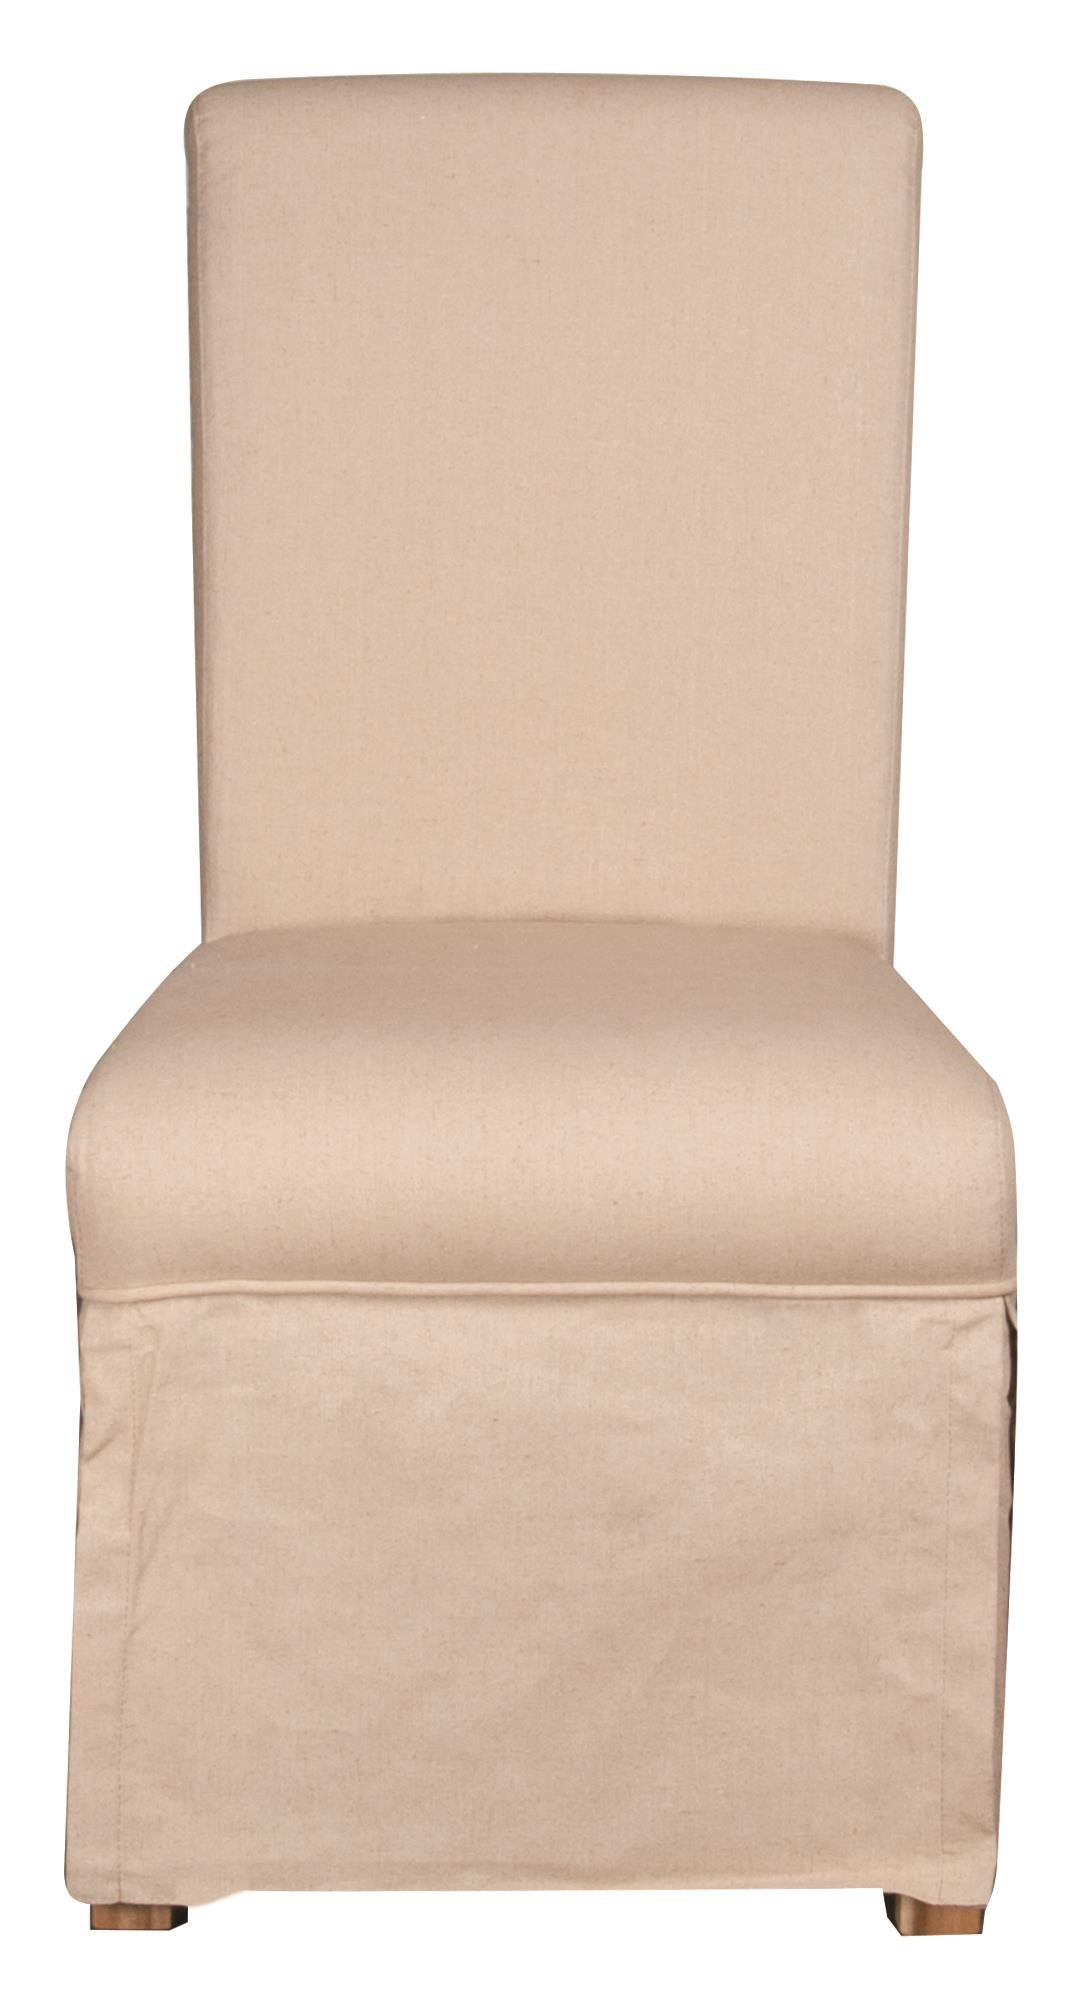 Slip Cover For Chair Long Beach Long Beach Slipcover Parson Chair By Morris Home Furnishings At Morris Home